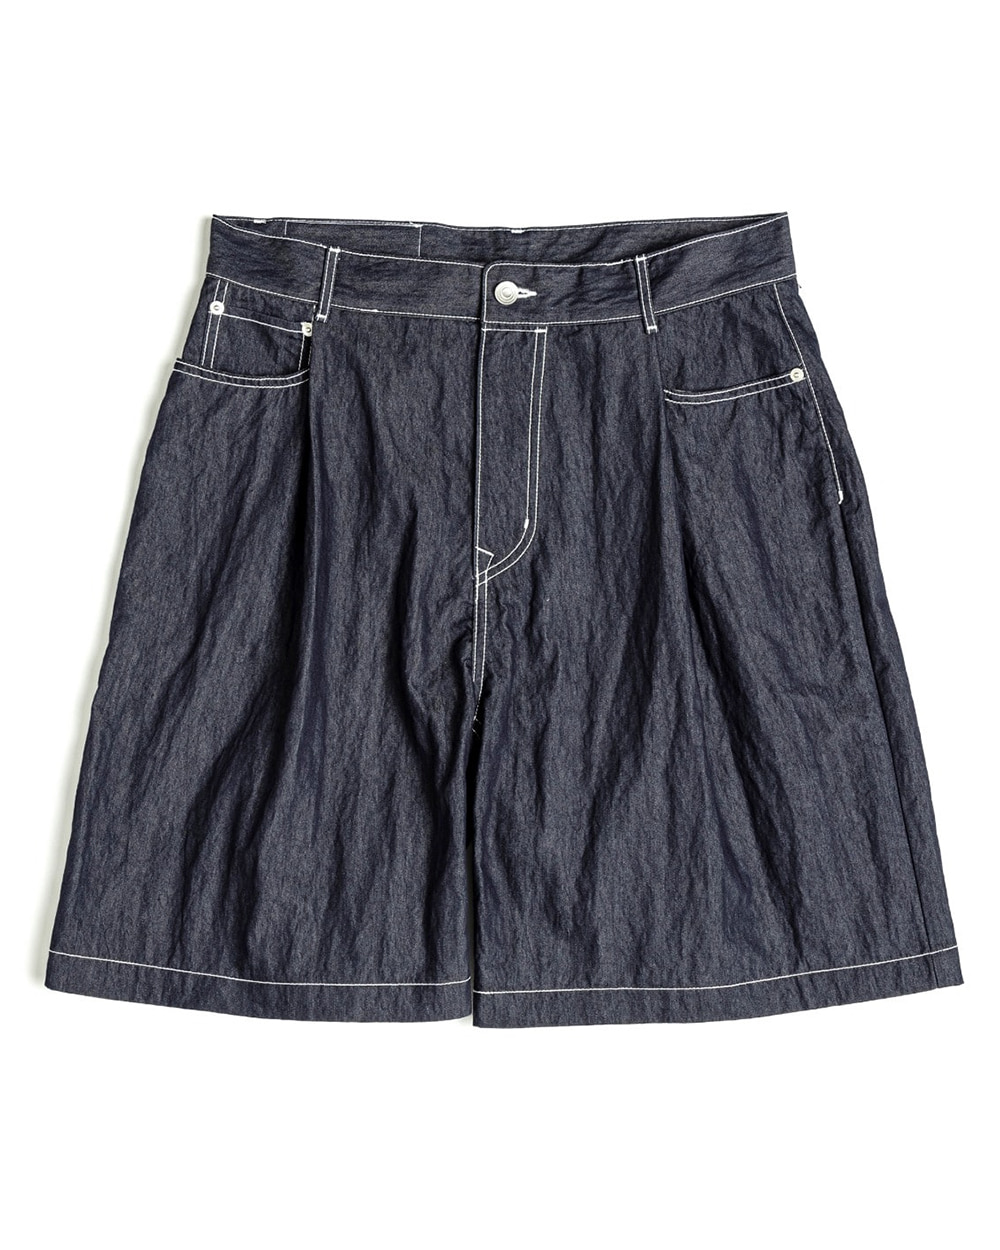 언어펙티드 ONE TUCK DENIM SHORTS (Indigo blue)